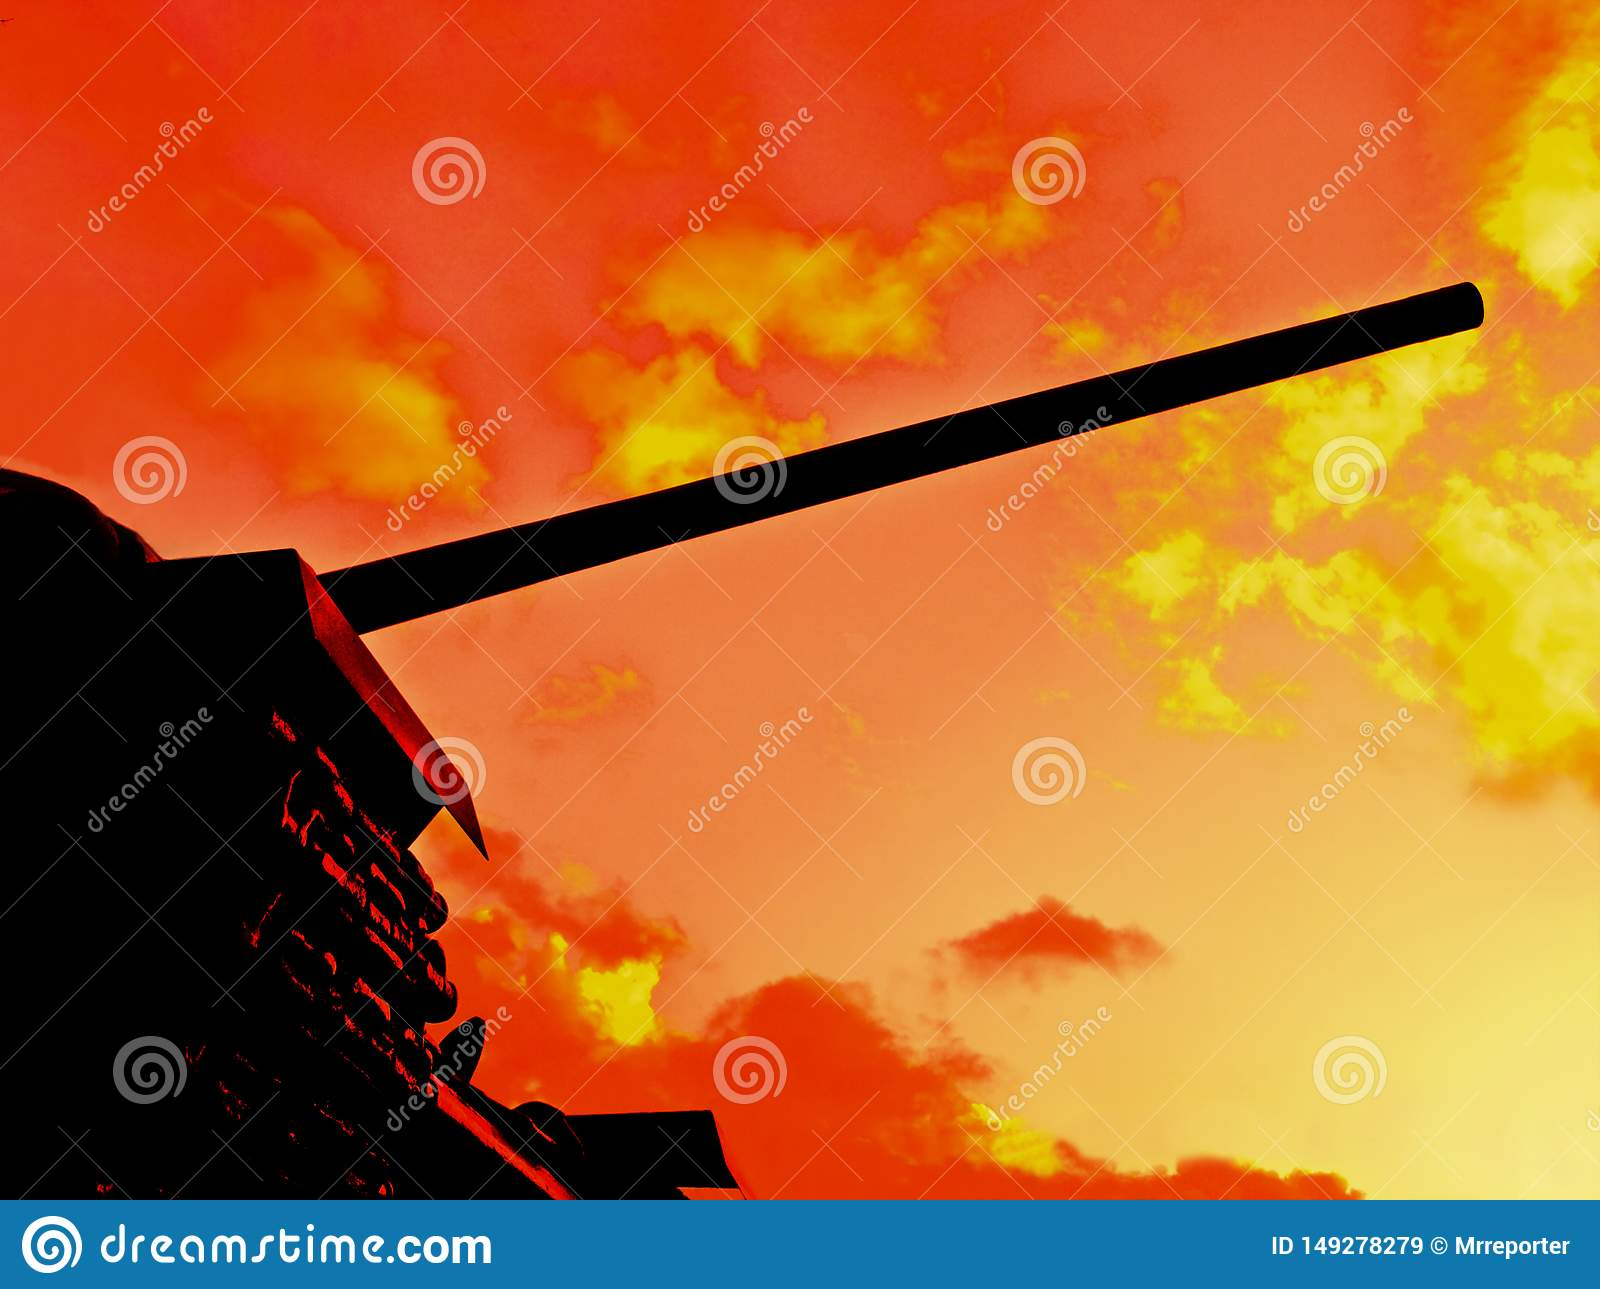 The flames of war stock image  Image of fiery, battle